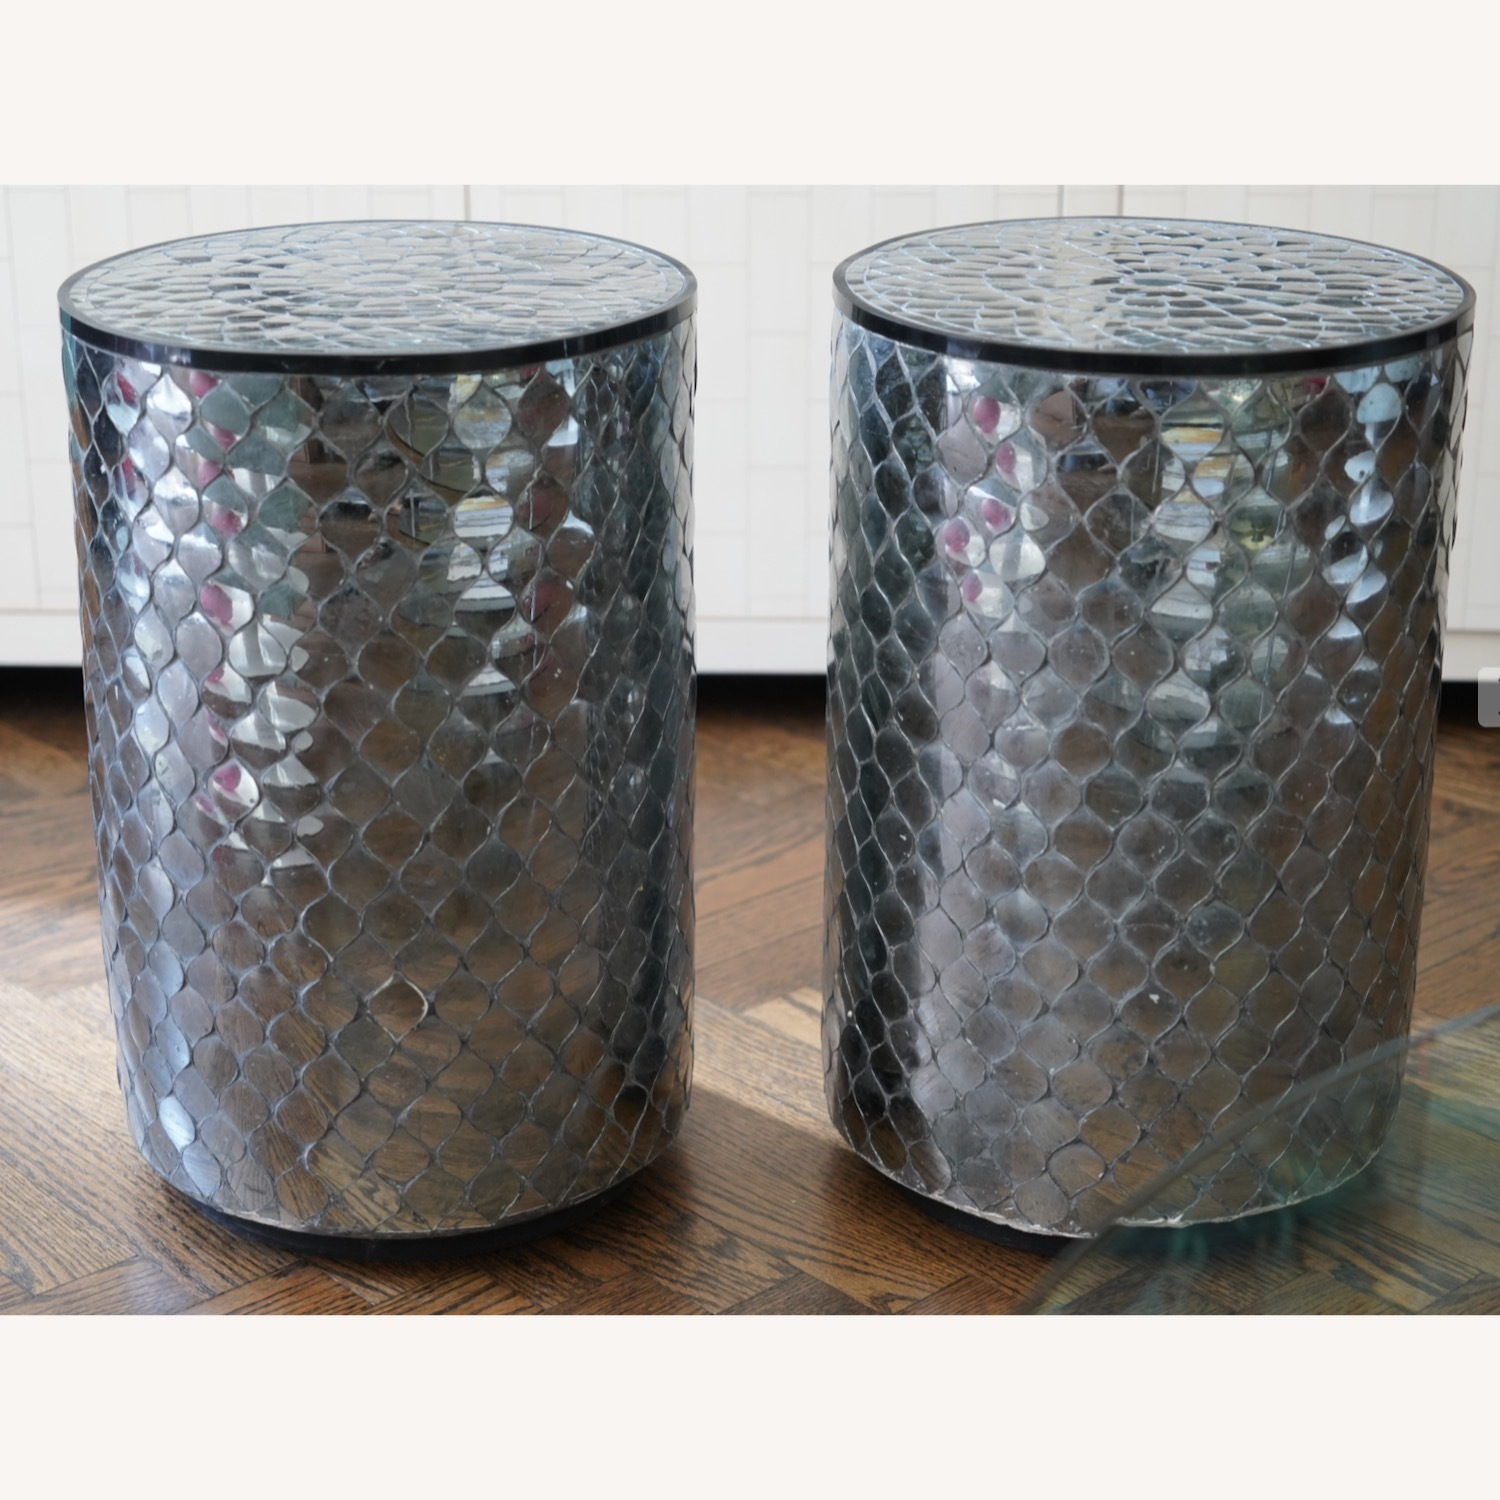 Moroccan Style Mirrored Stools Set of 2 - image-1